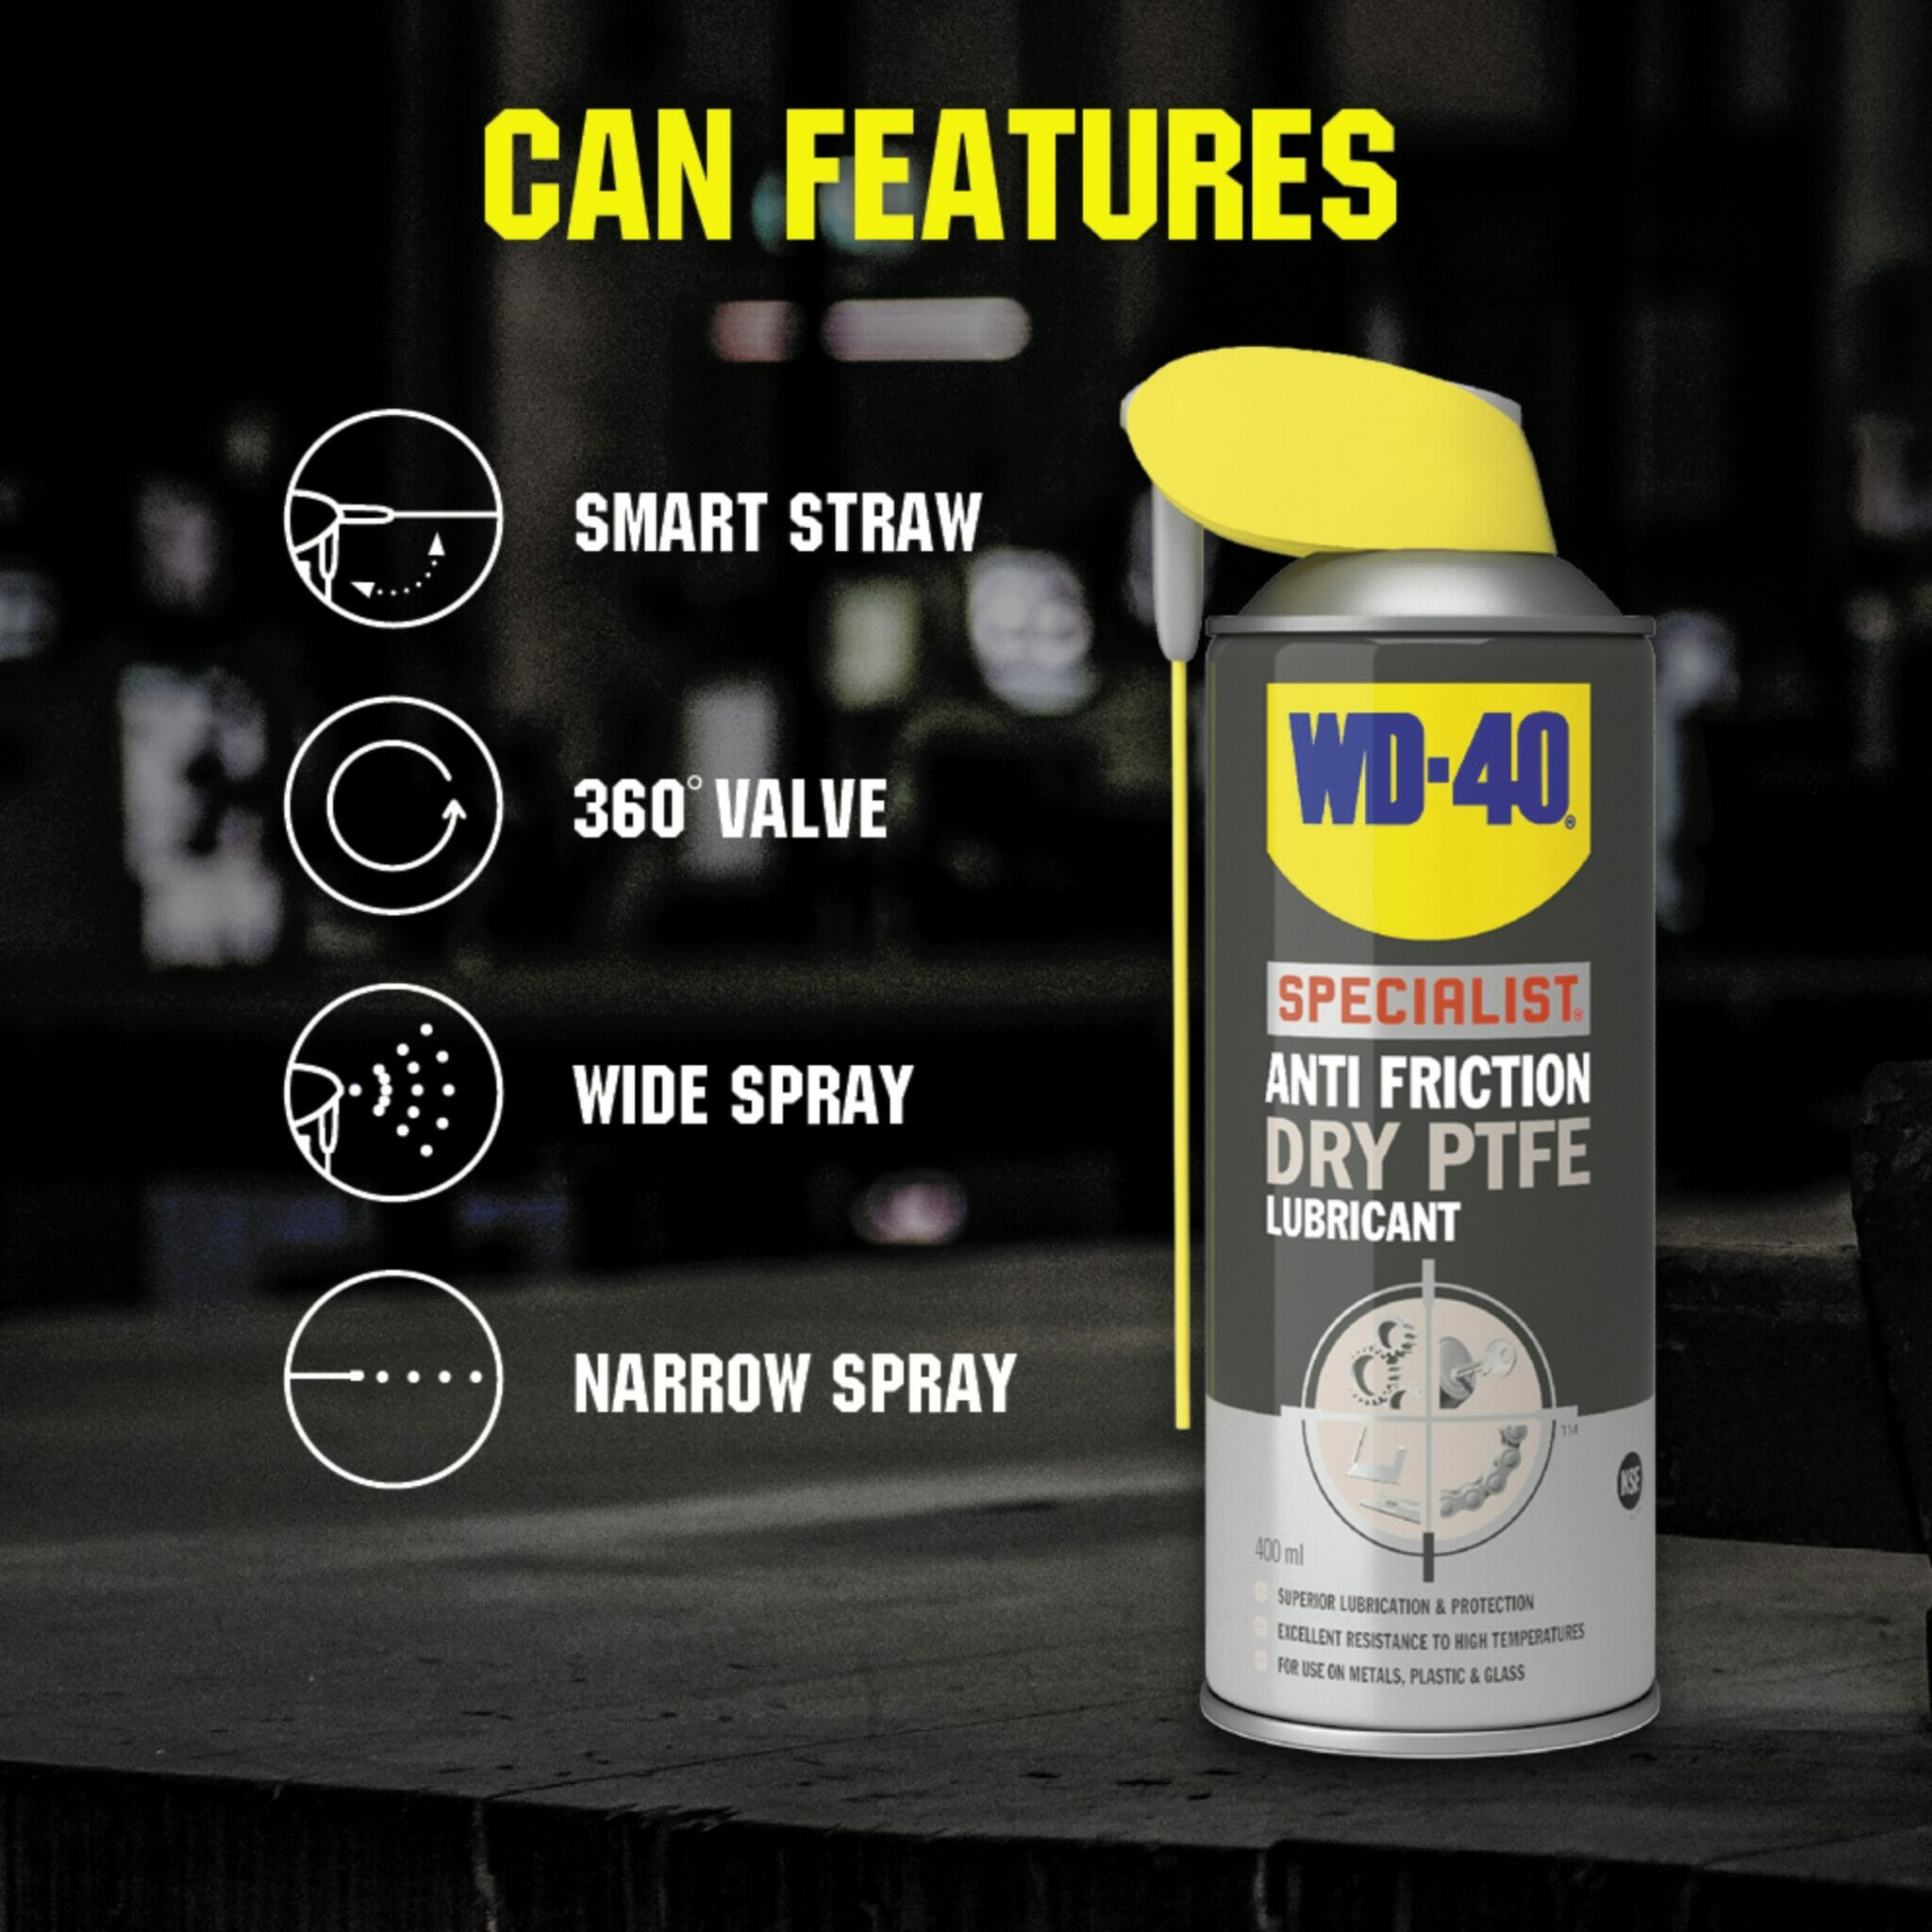 uk wd40 specialist anti friction dry friction ptfe lubricant 400ml can features lifestyle background